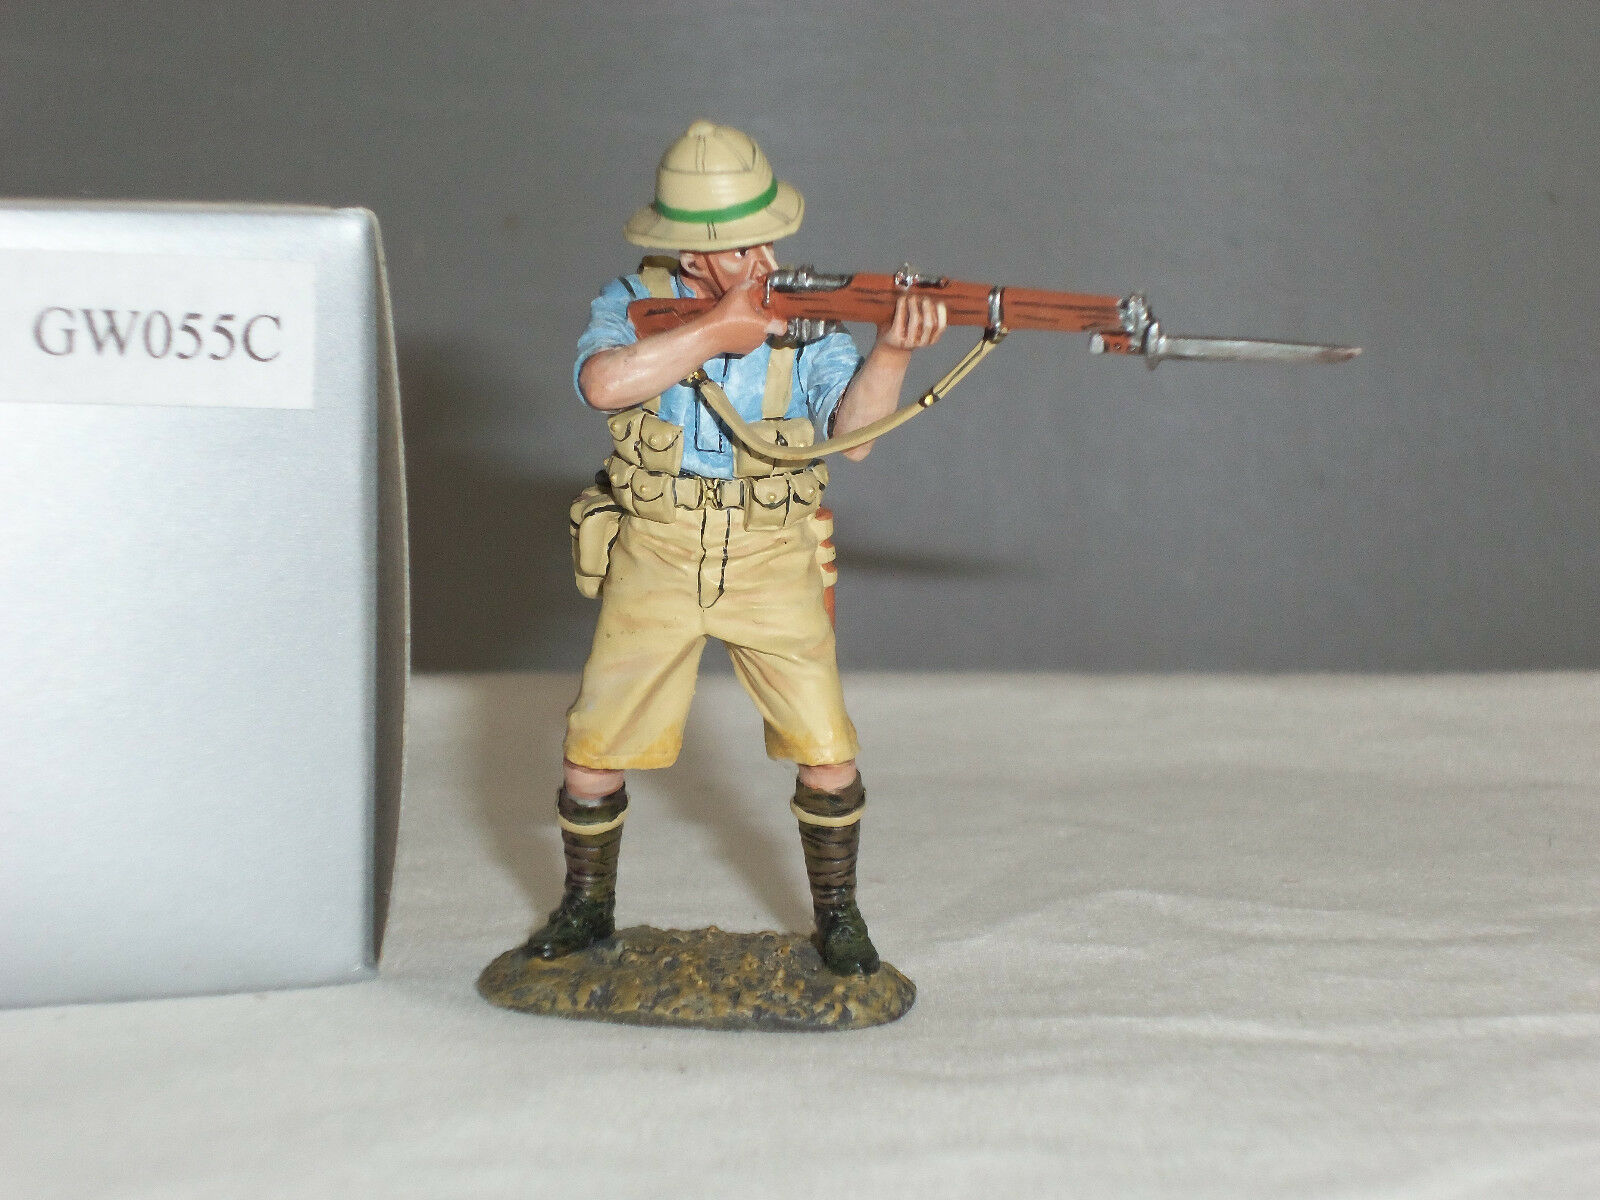 THOMAS GUNN GW055C BRITISH RIFLEMAN STANDING FIRING WORLD WAR ONE TOY SOLDIER